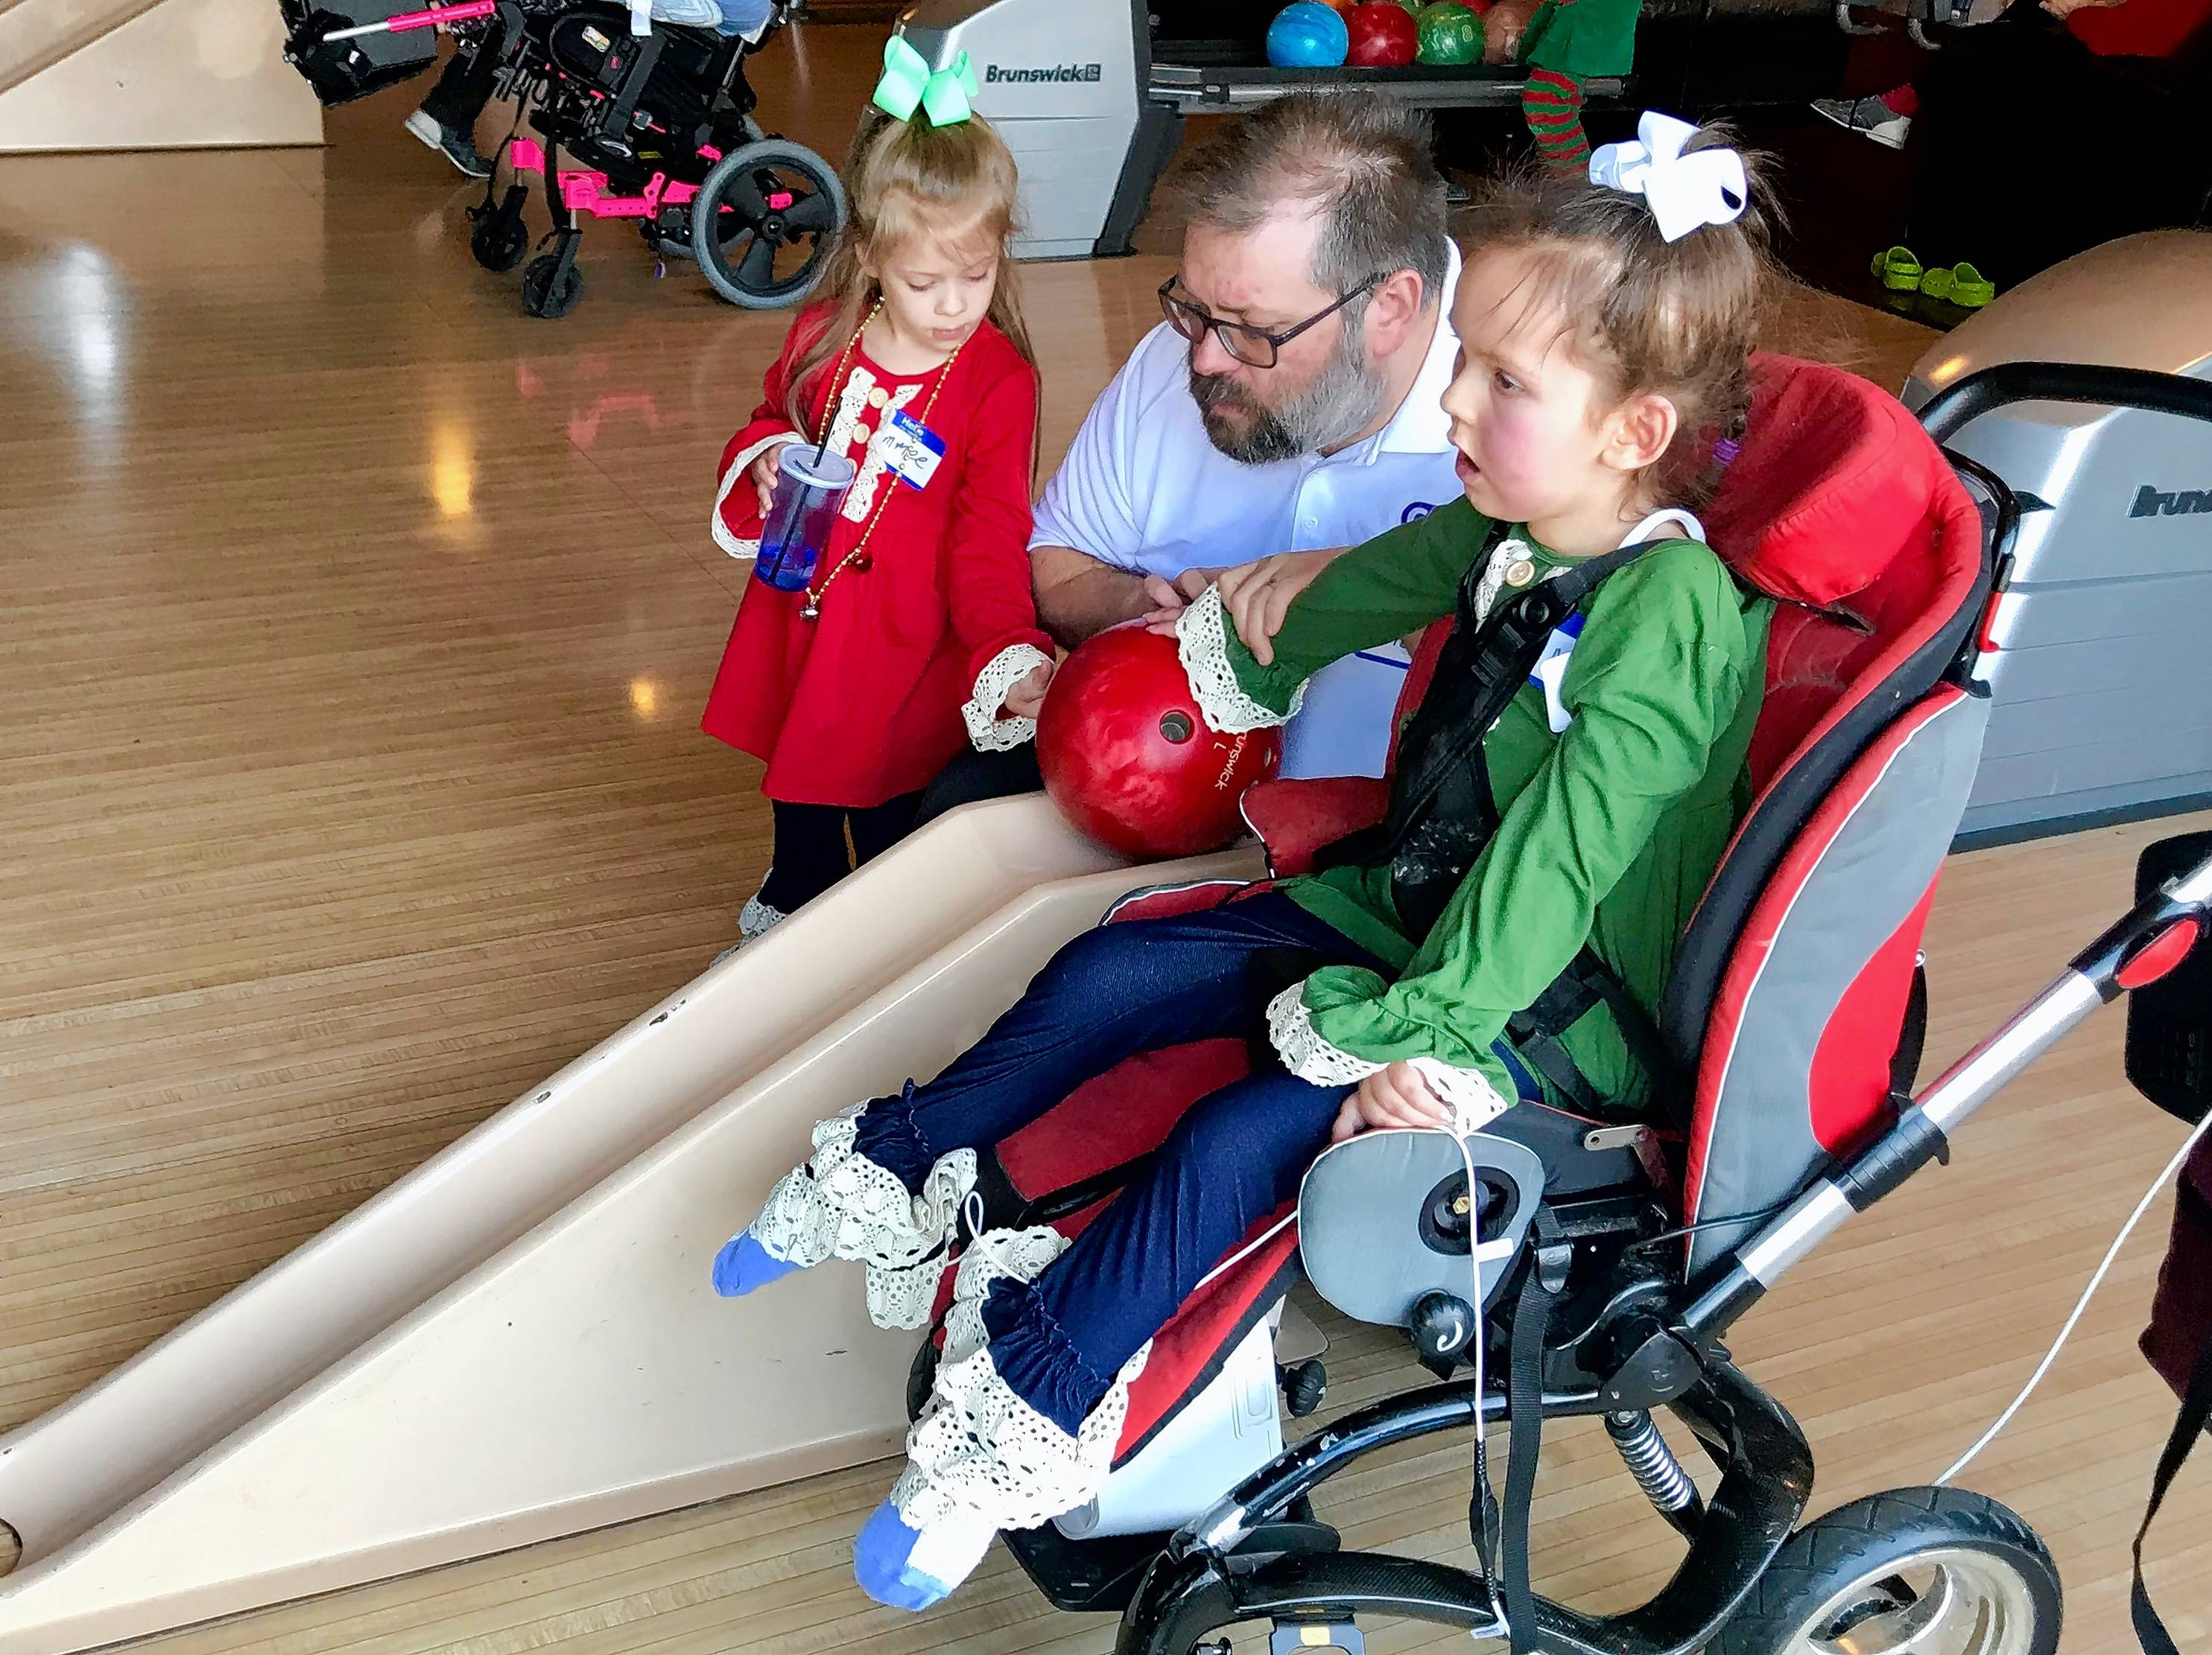 Mckenna Jurgovan, 7, of South Elgin, right, bowls Sunday with help from her dad, Eric, and 4-year-old sister, Emery, during a JourneyCare event at Pinstripes in Oak Brook.